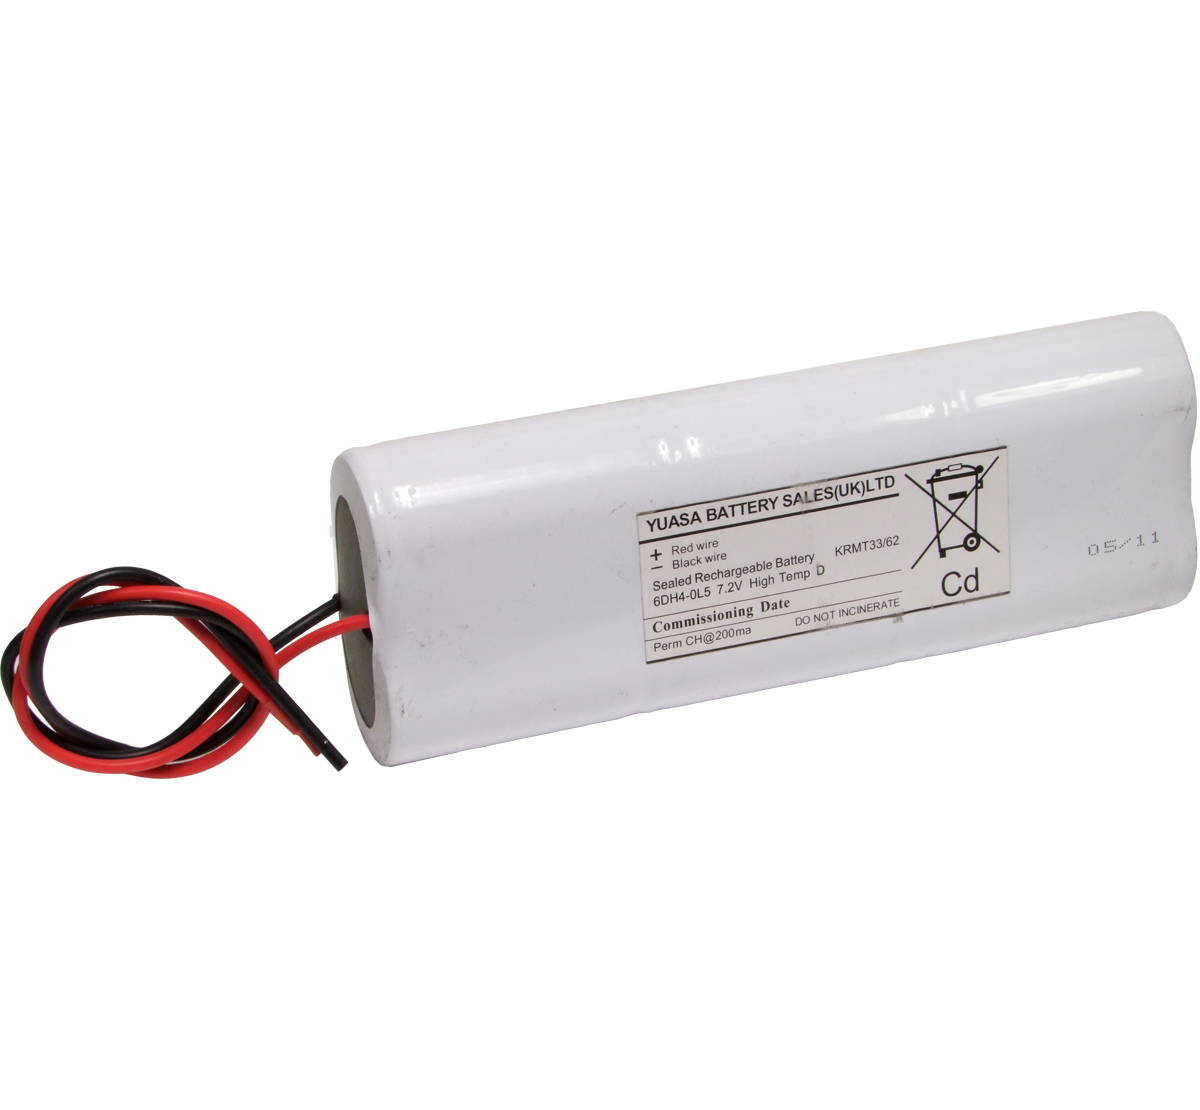 Yuasa 6DH4.0L5 Emergency Lighting Battery